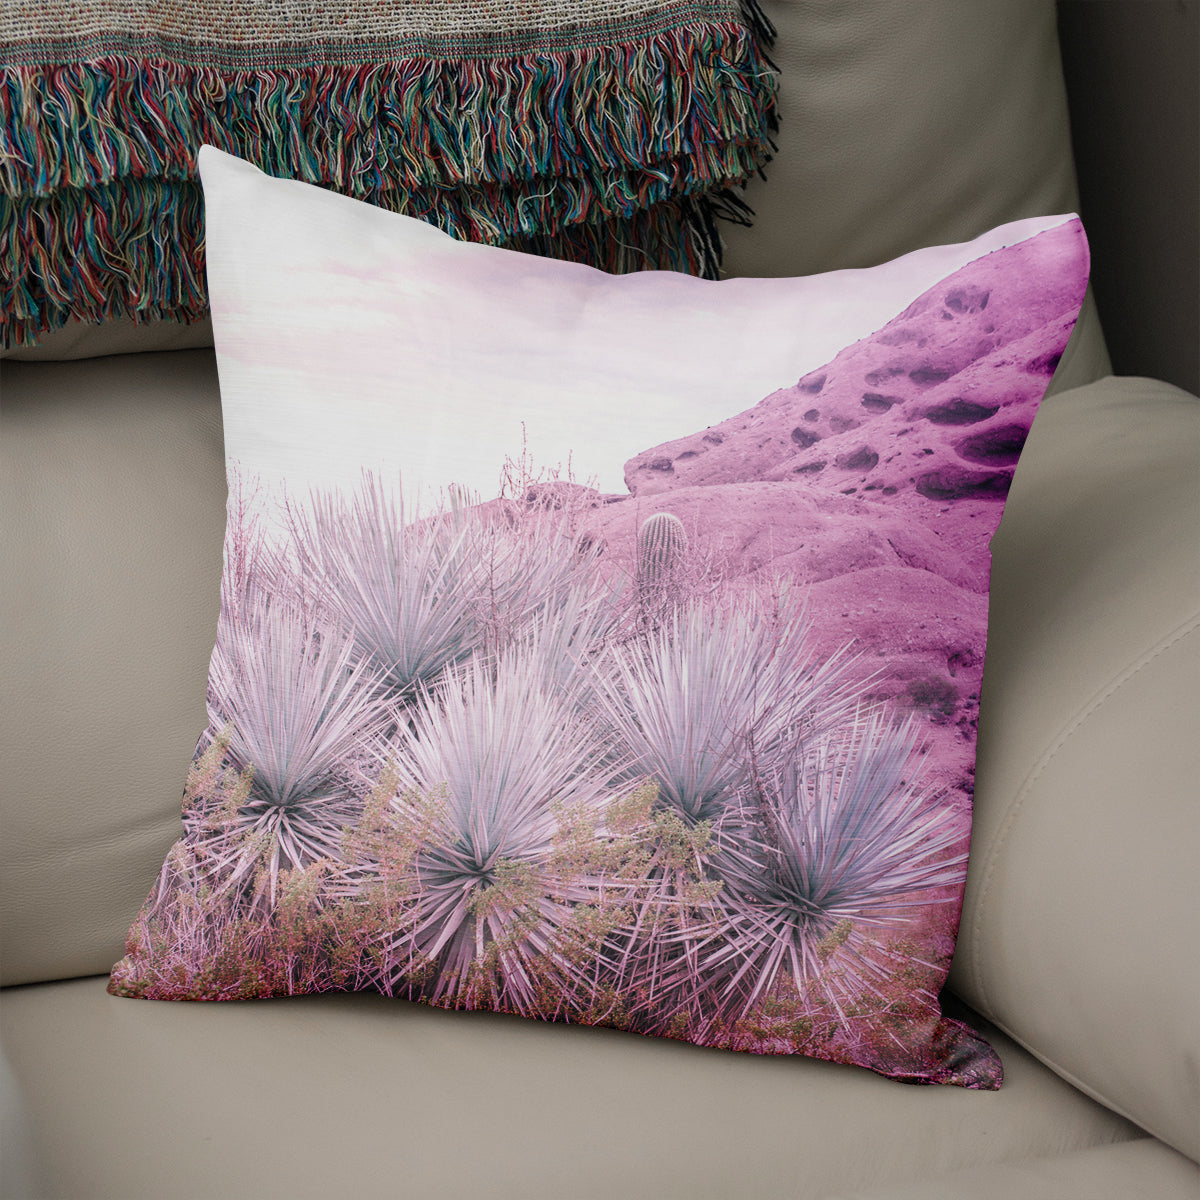 Dream Desert Scene Throw Pillow - 5 Sizes